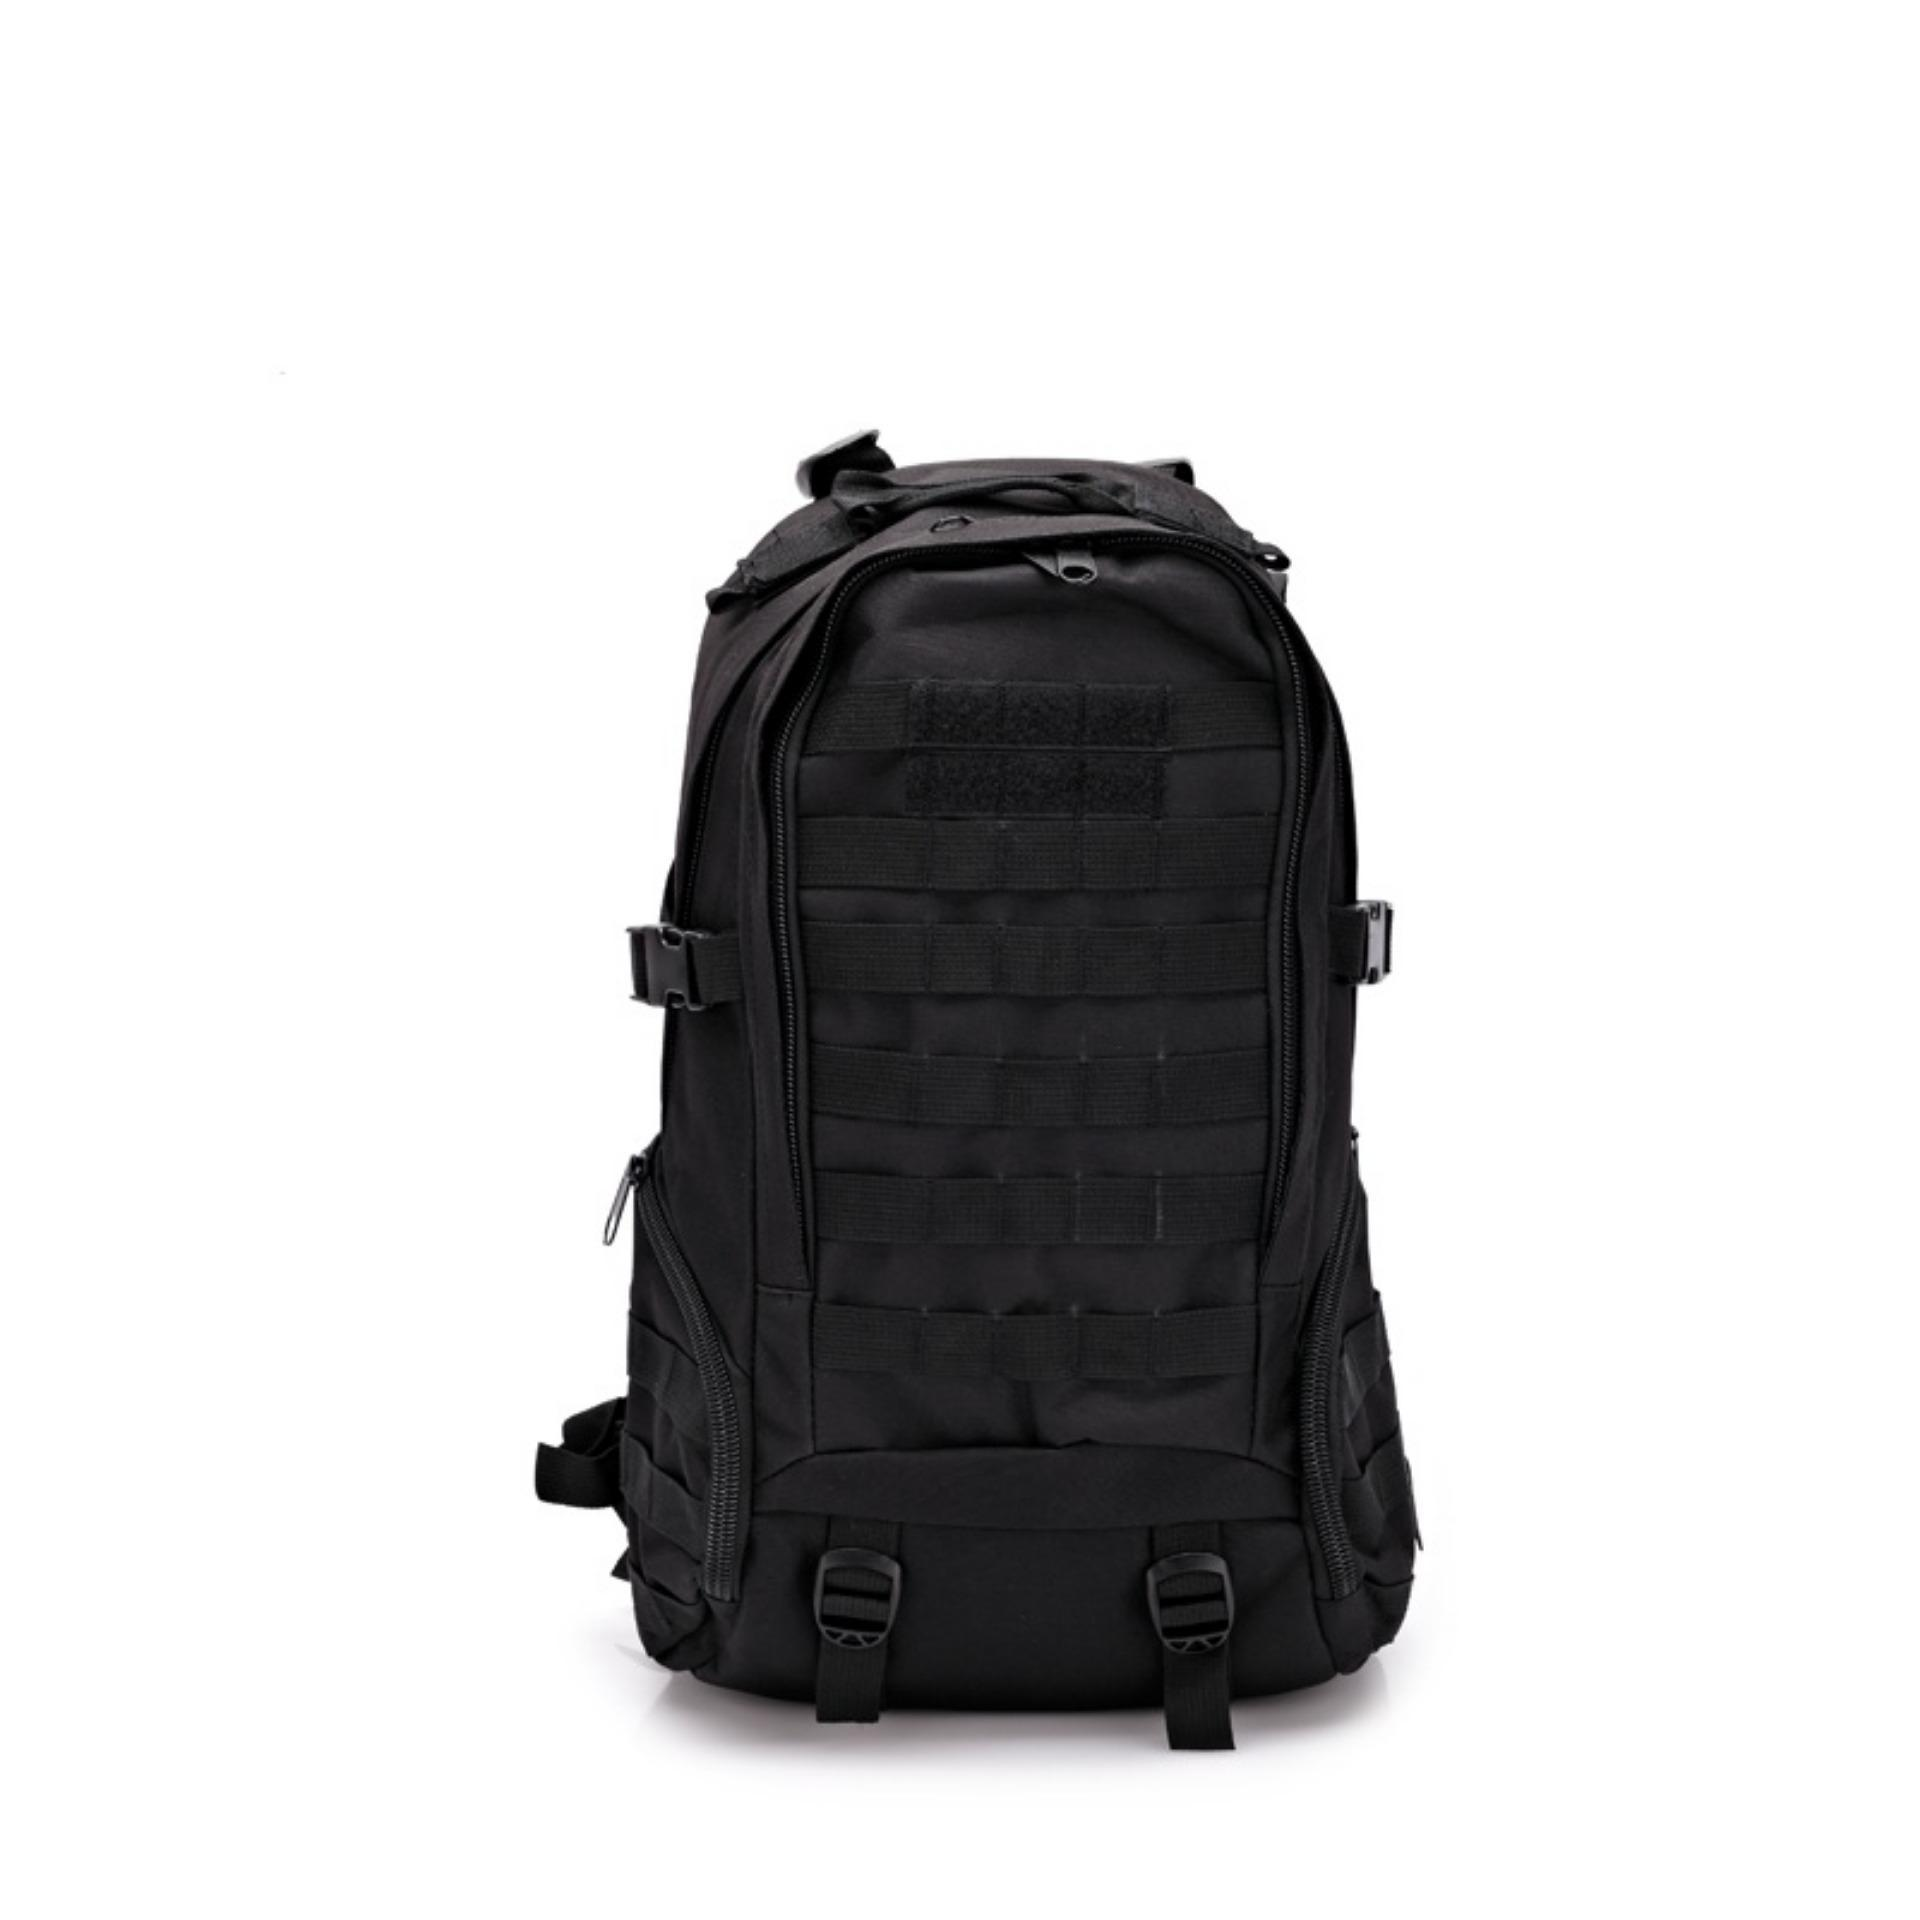 Army Bags Molle Backpack Military 3P Gym Sch**l Trekking Ripstop Camping Woodland Tactical Gear Backpack Black Intl Lower Price